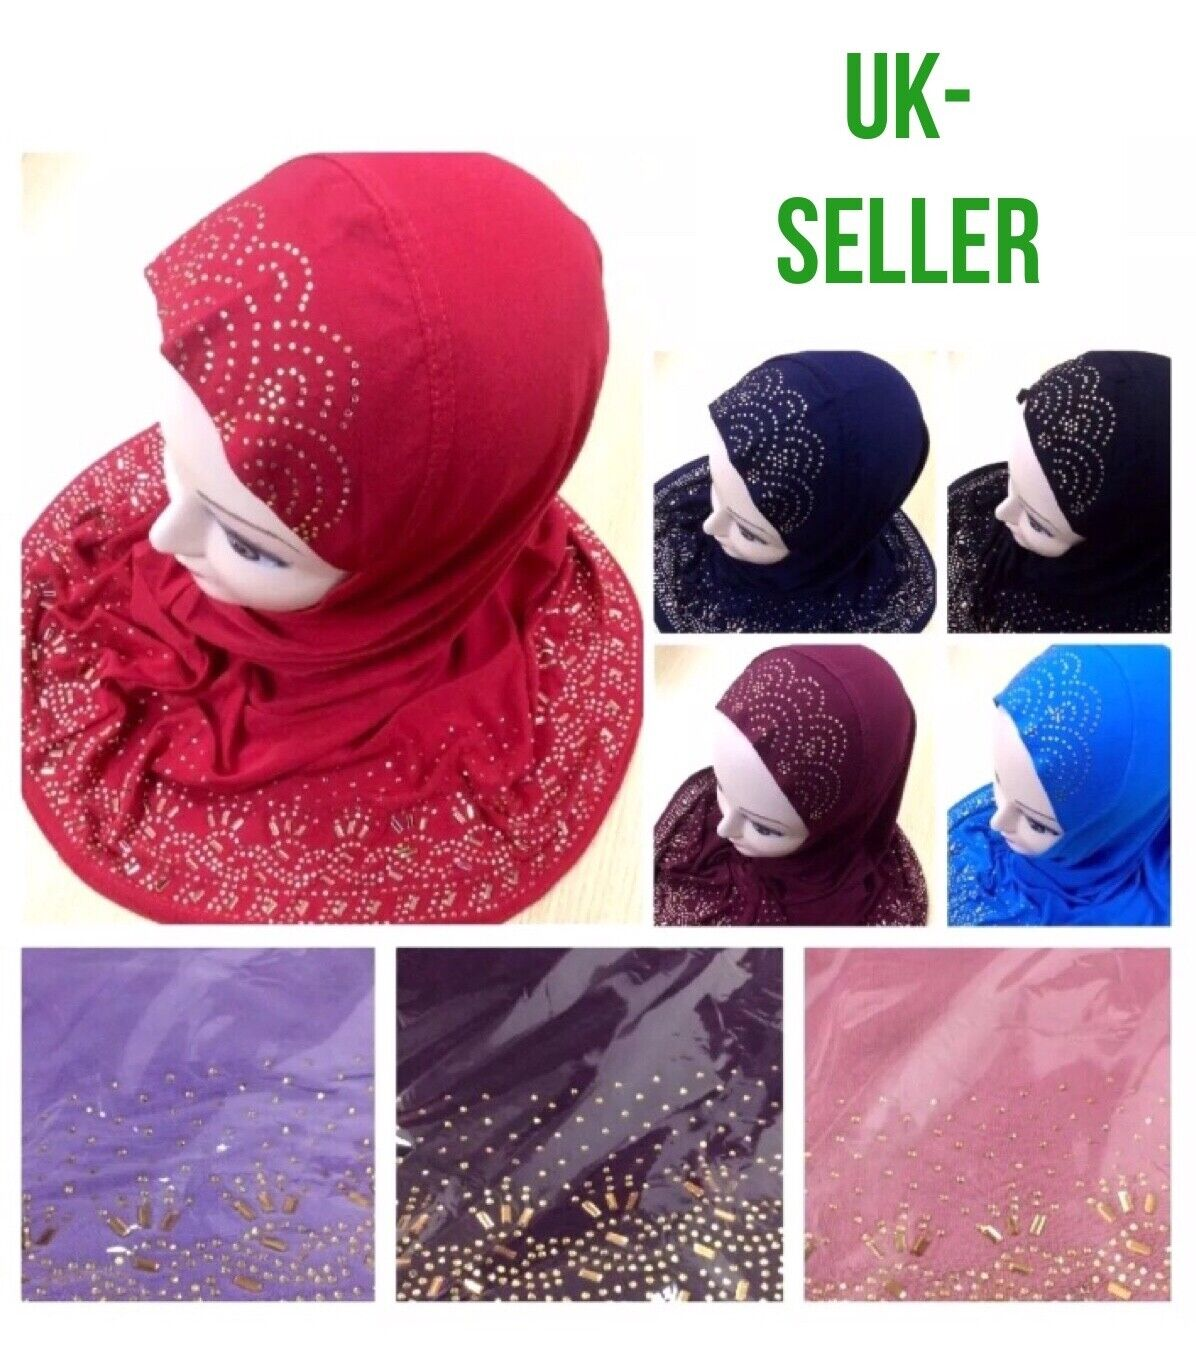 Muslim Kids Girls Hijab Islamic Glass Work New Design Hijab Scarf Uk Seller P&p